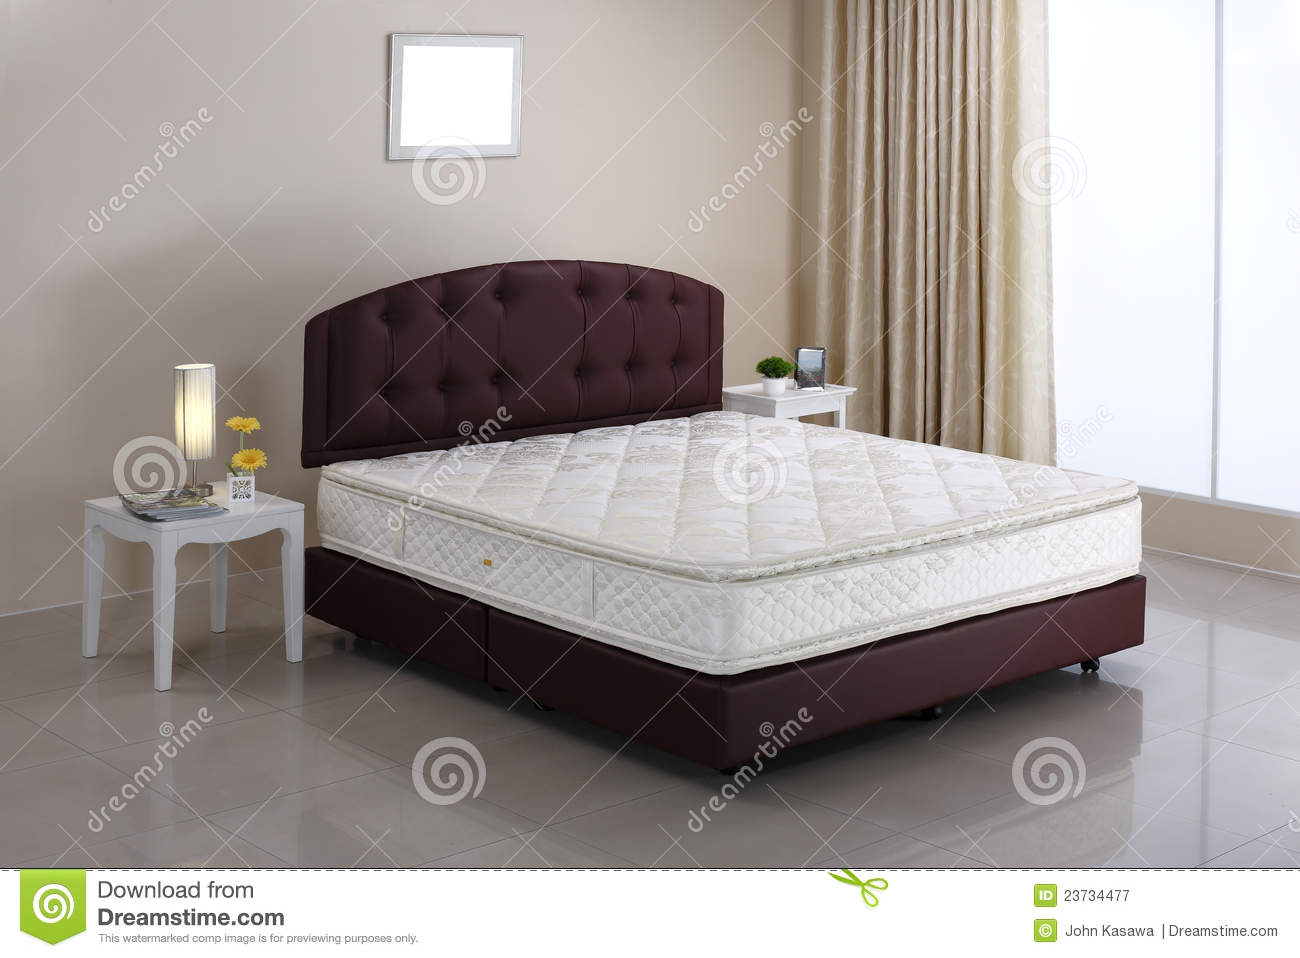 Bed Mattress And Bedroom Atmosphere Stock Image - Image of anatomy ...